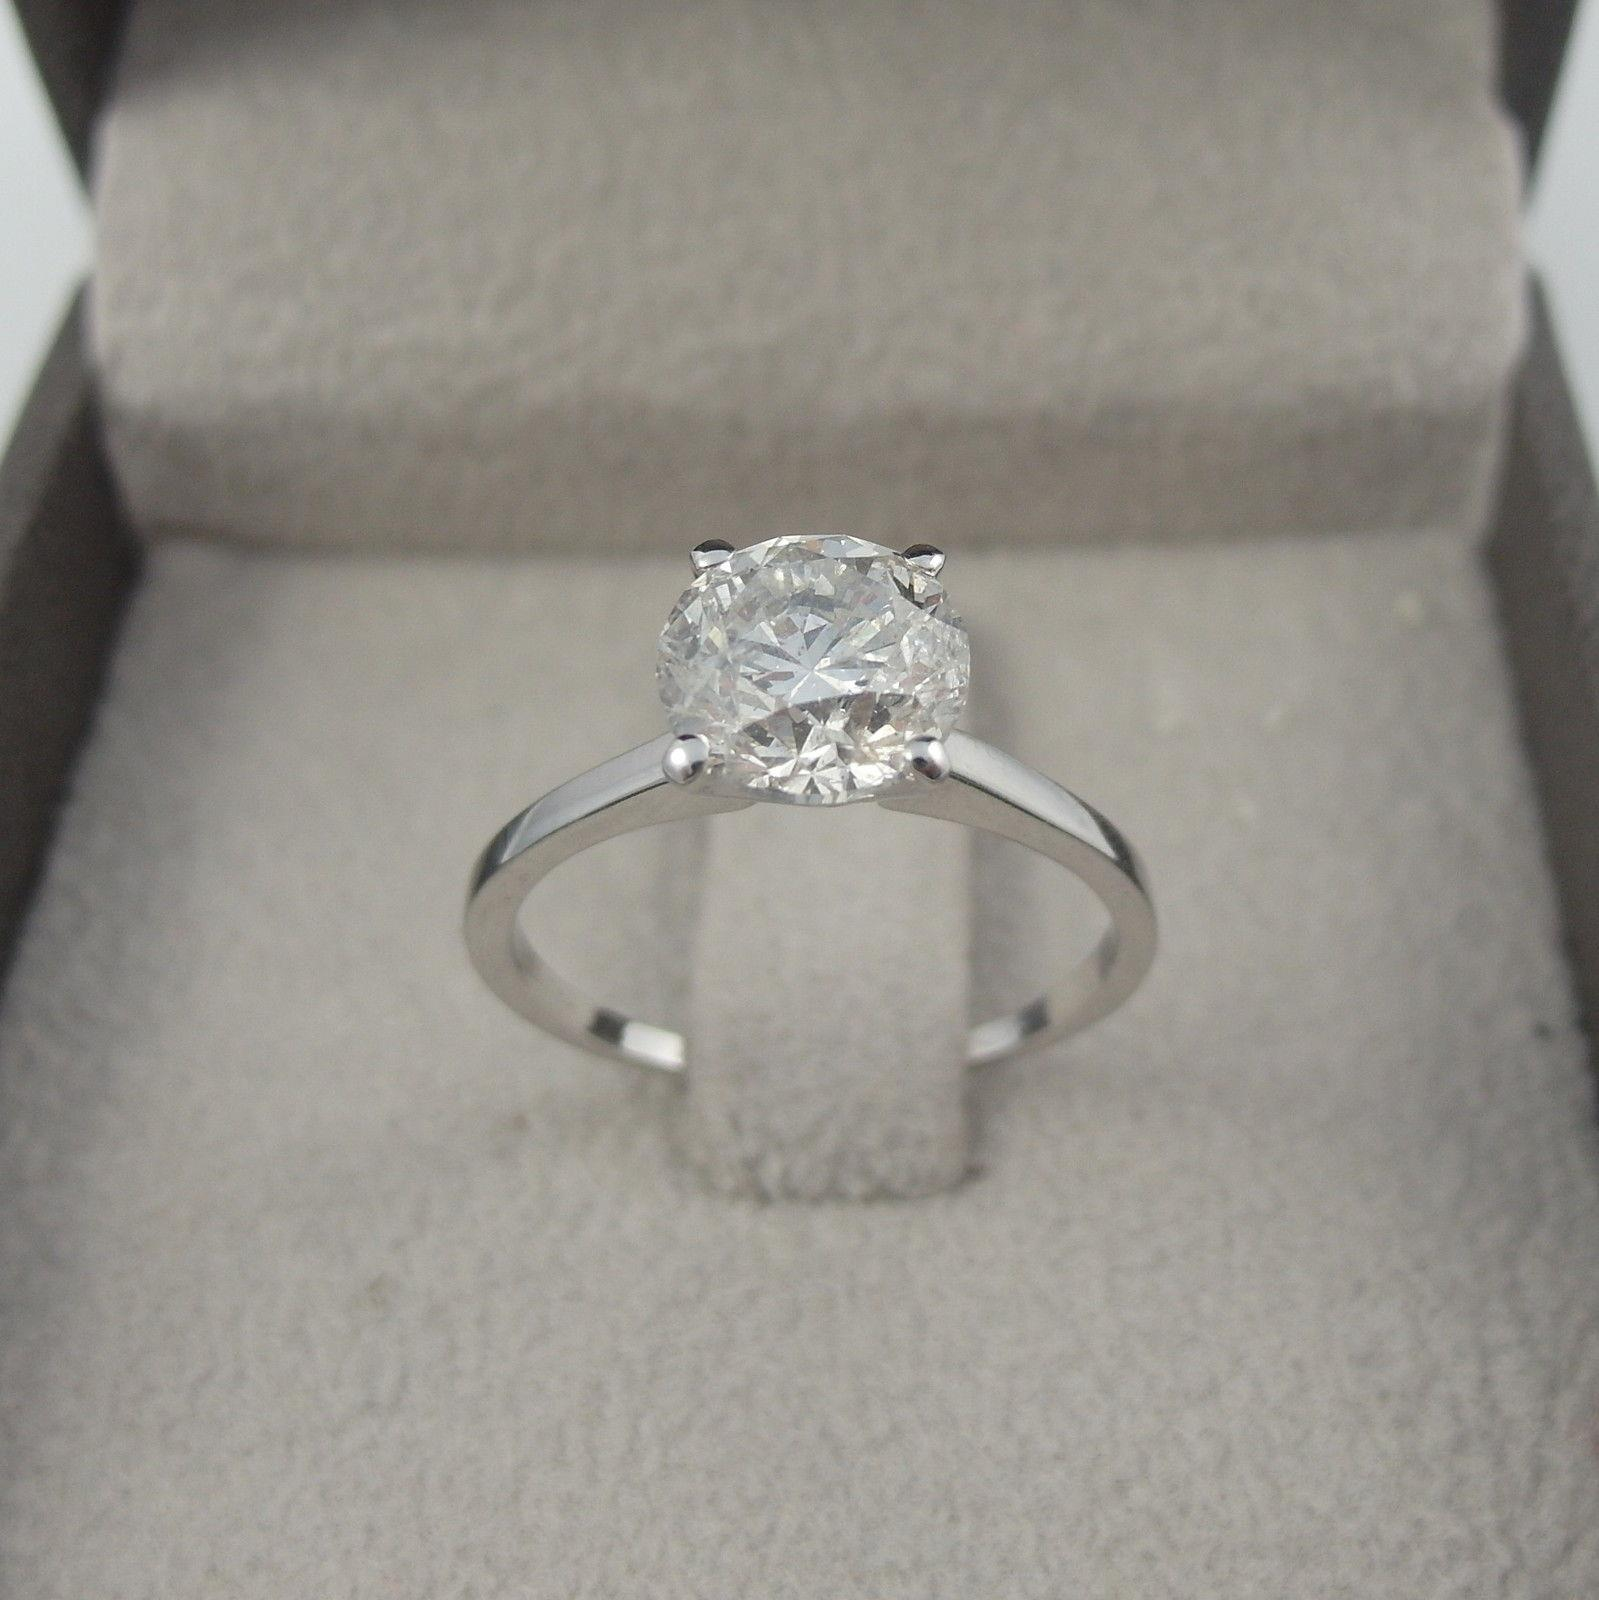 Vs1 Round Brilliant Diamond Ring 4 Carats Colorless Flawless 18k White Gold